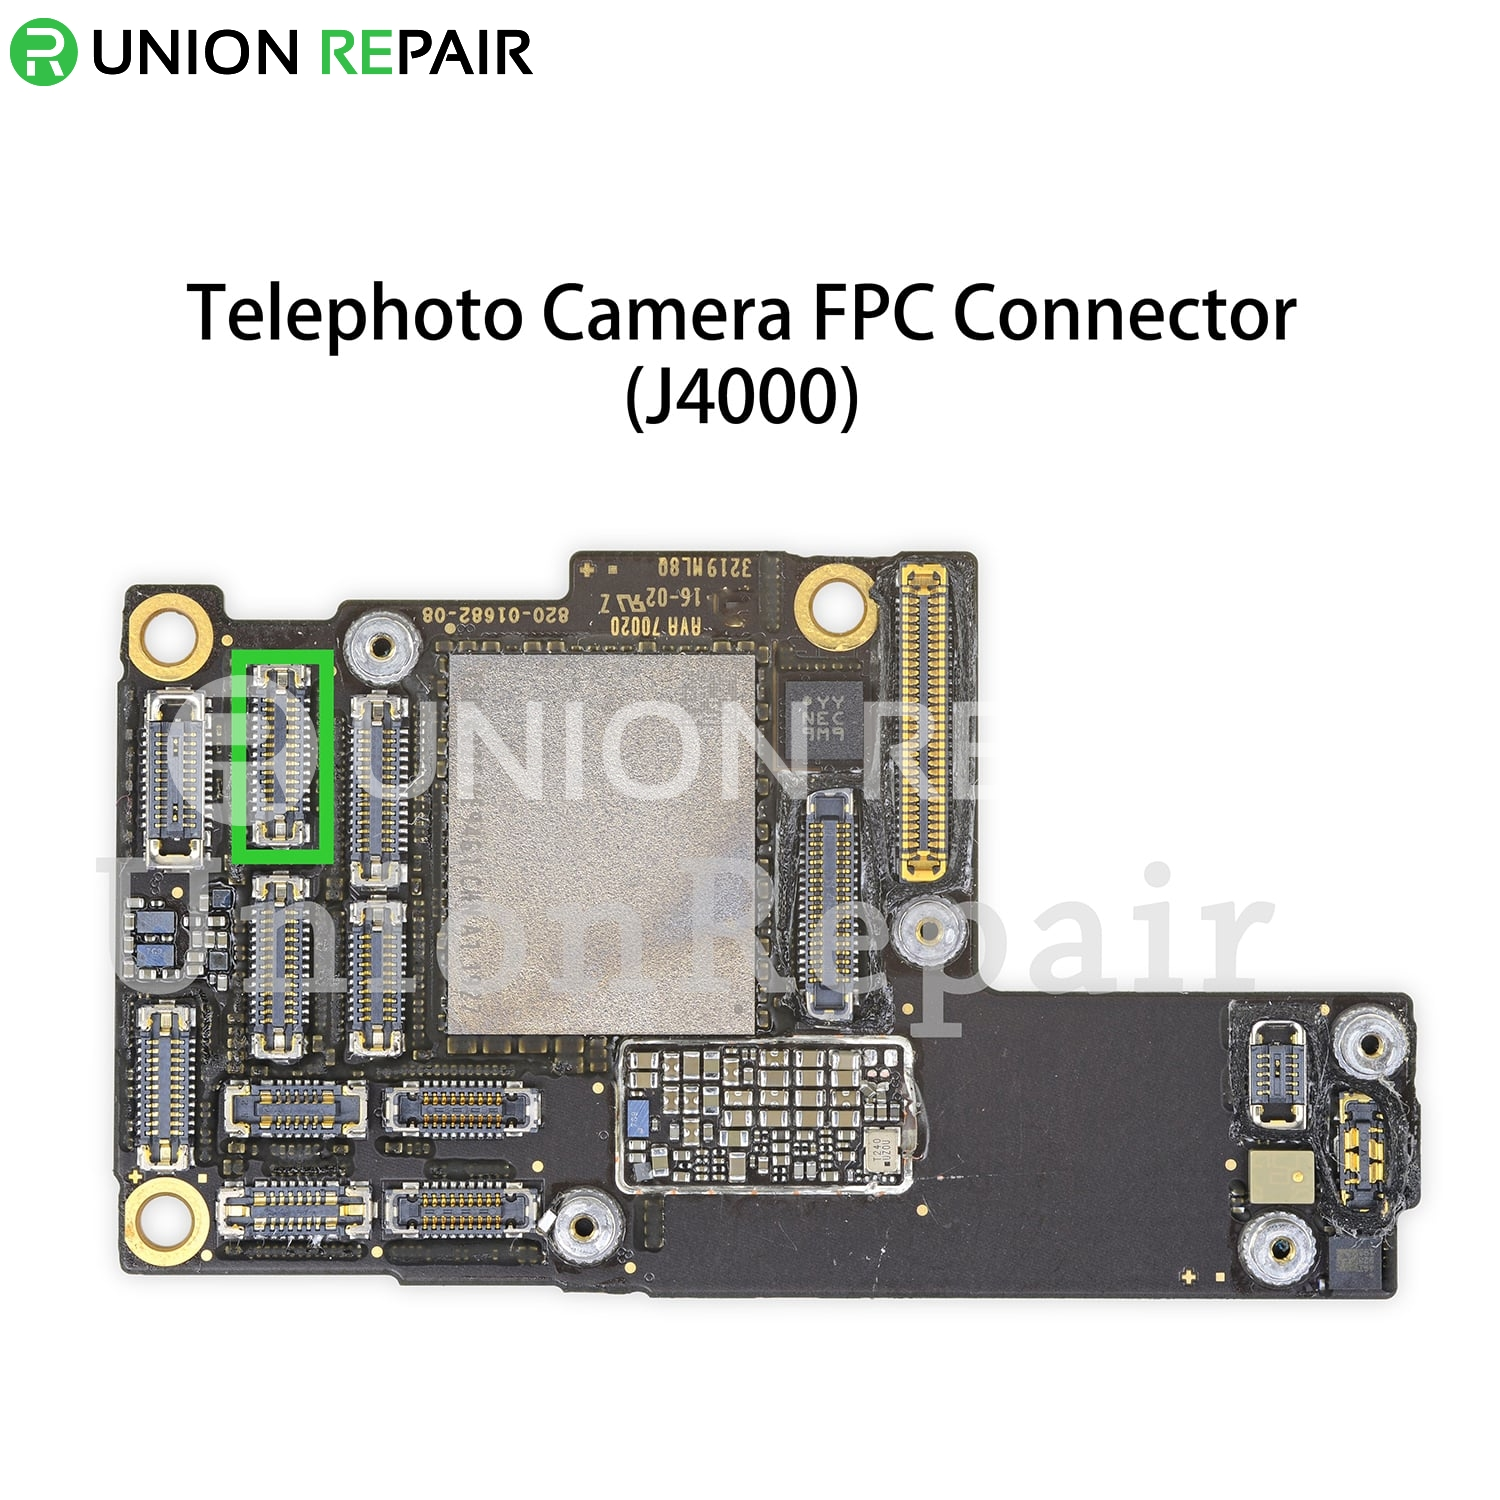 Replacement for iPhone 11 Pro/11 Pro Max Rear Telephoto Camera Connector Port Onboard, fig. 1